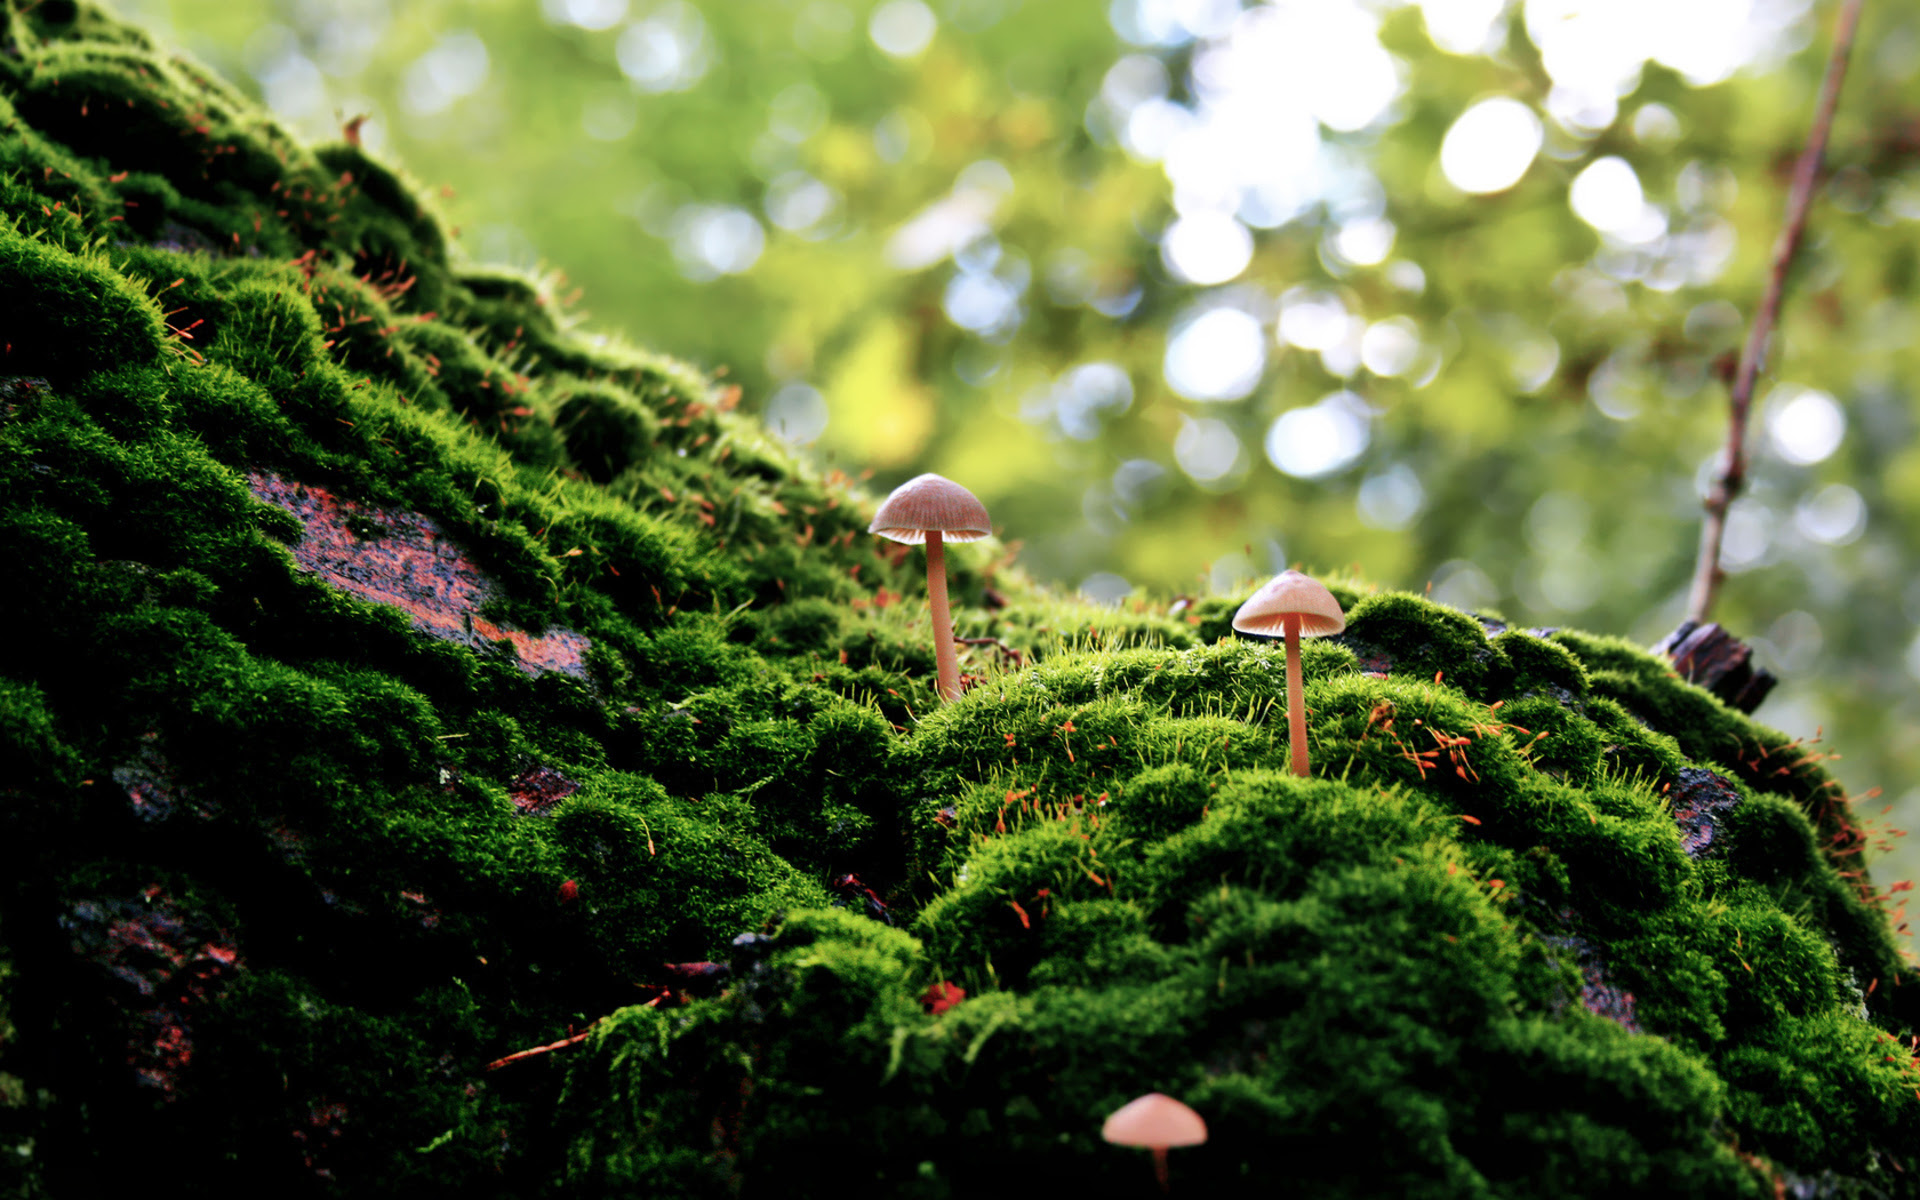 mushroom wallpaper landscape  HD Desktop Wallpapers  4k HD